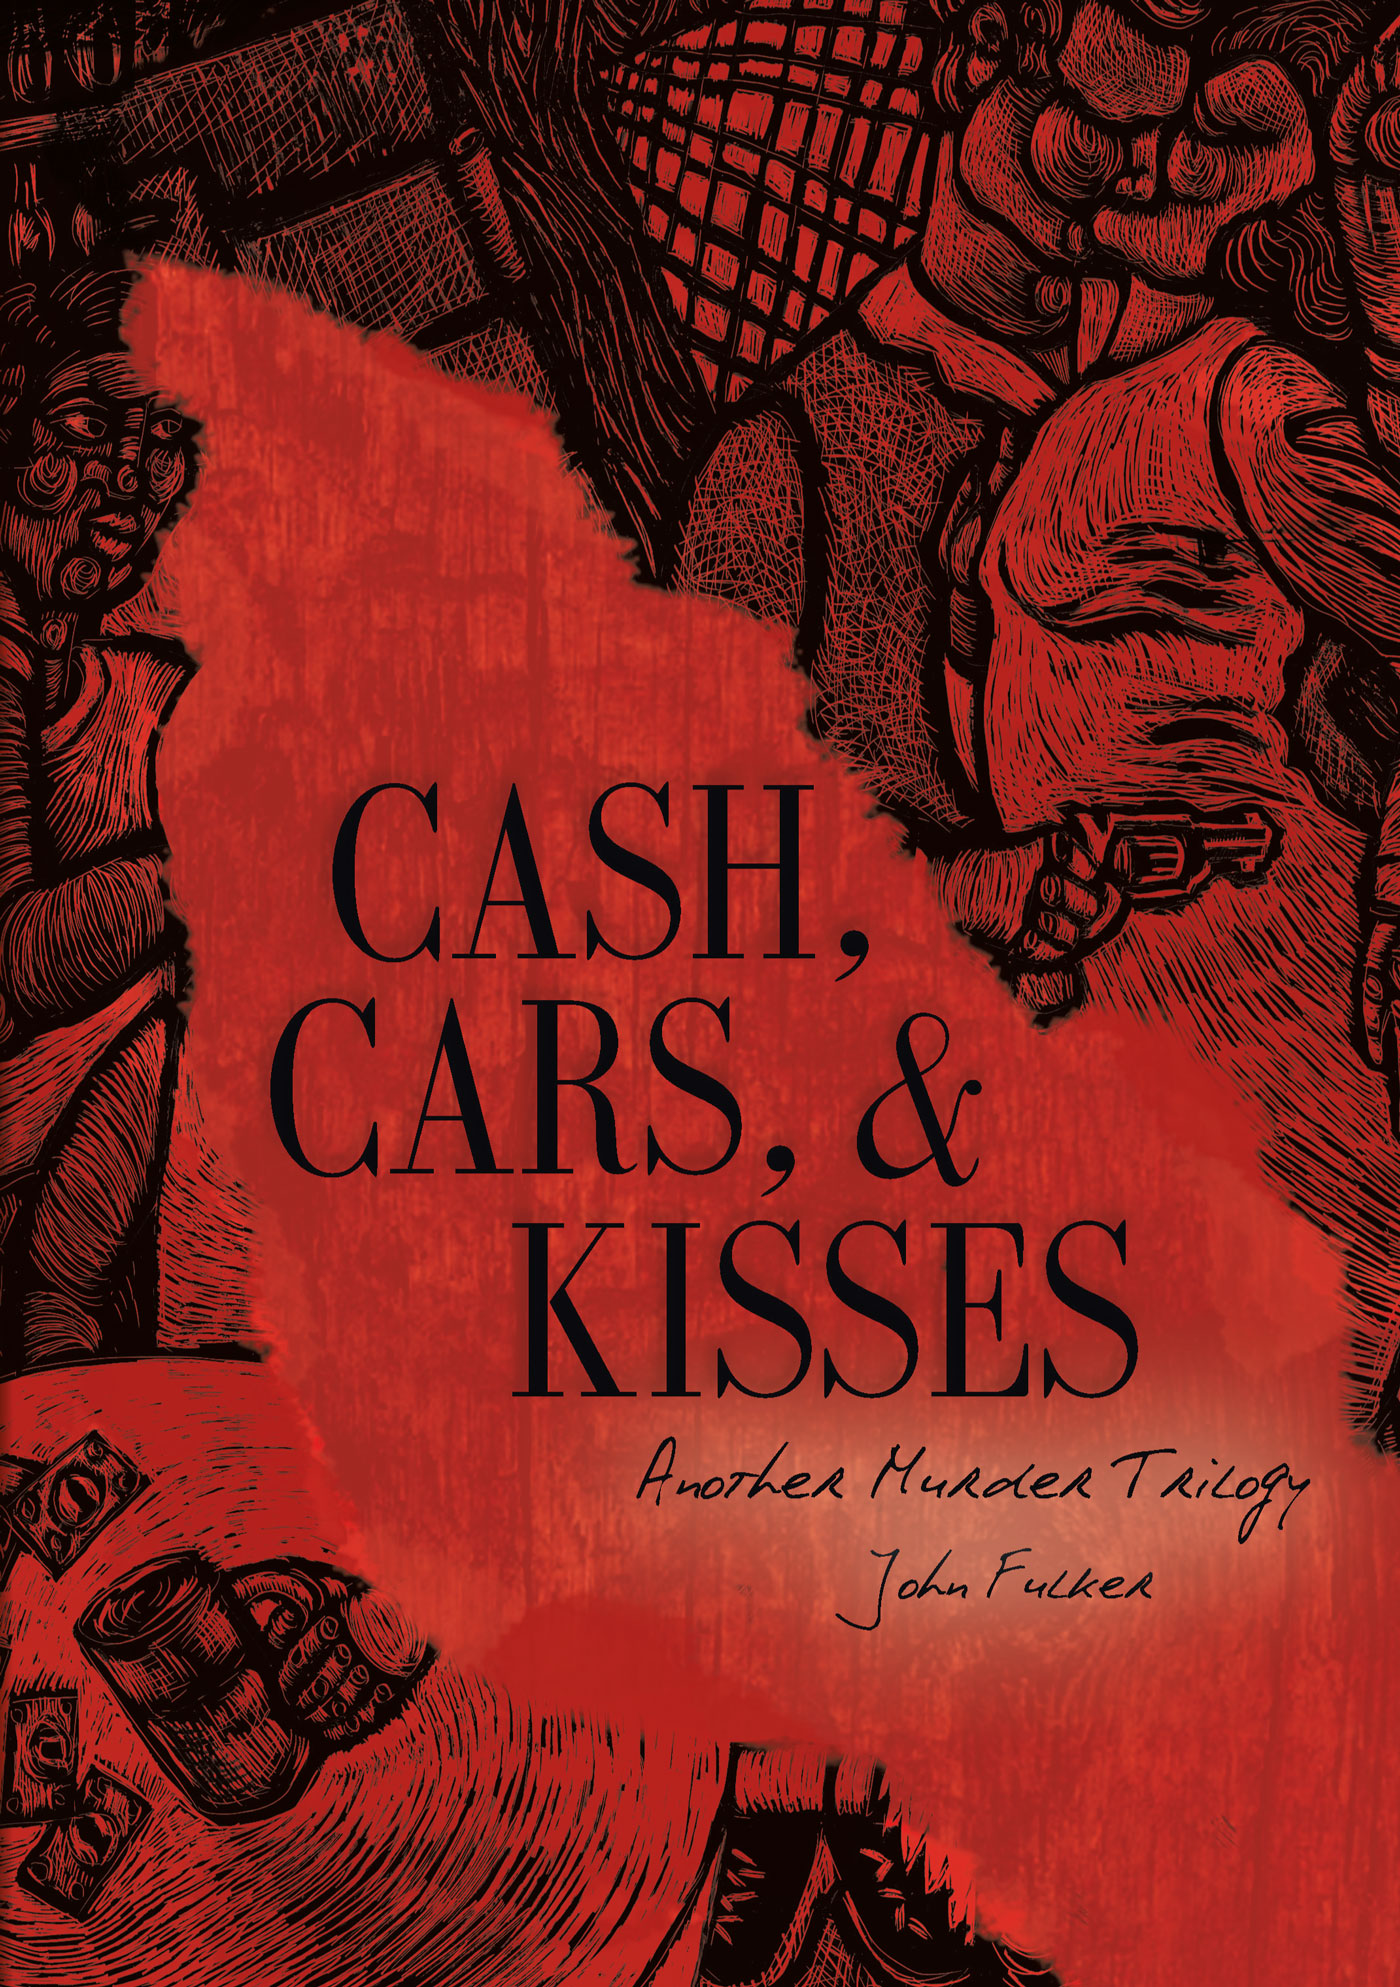 John Fulker's book, Cash, Cars, & Kisses